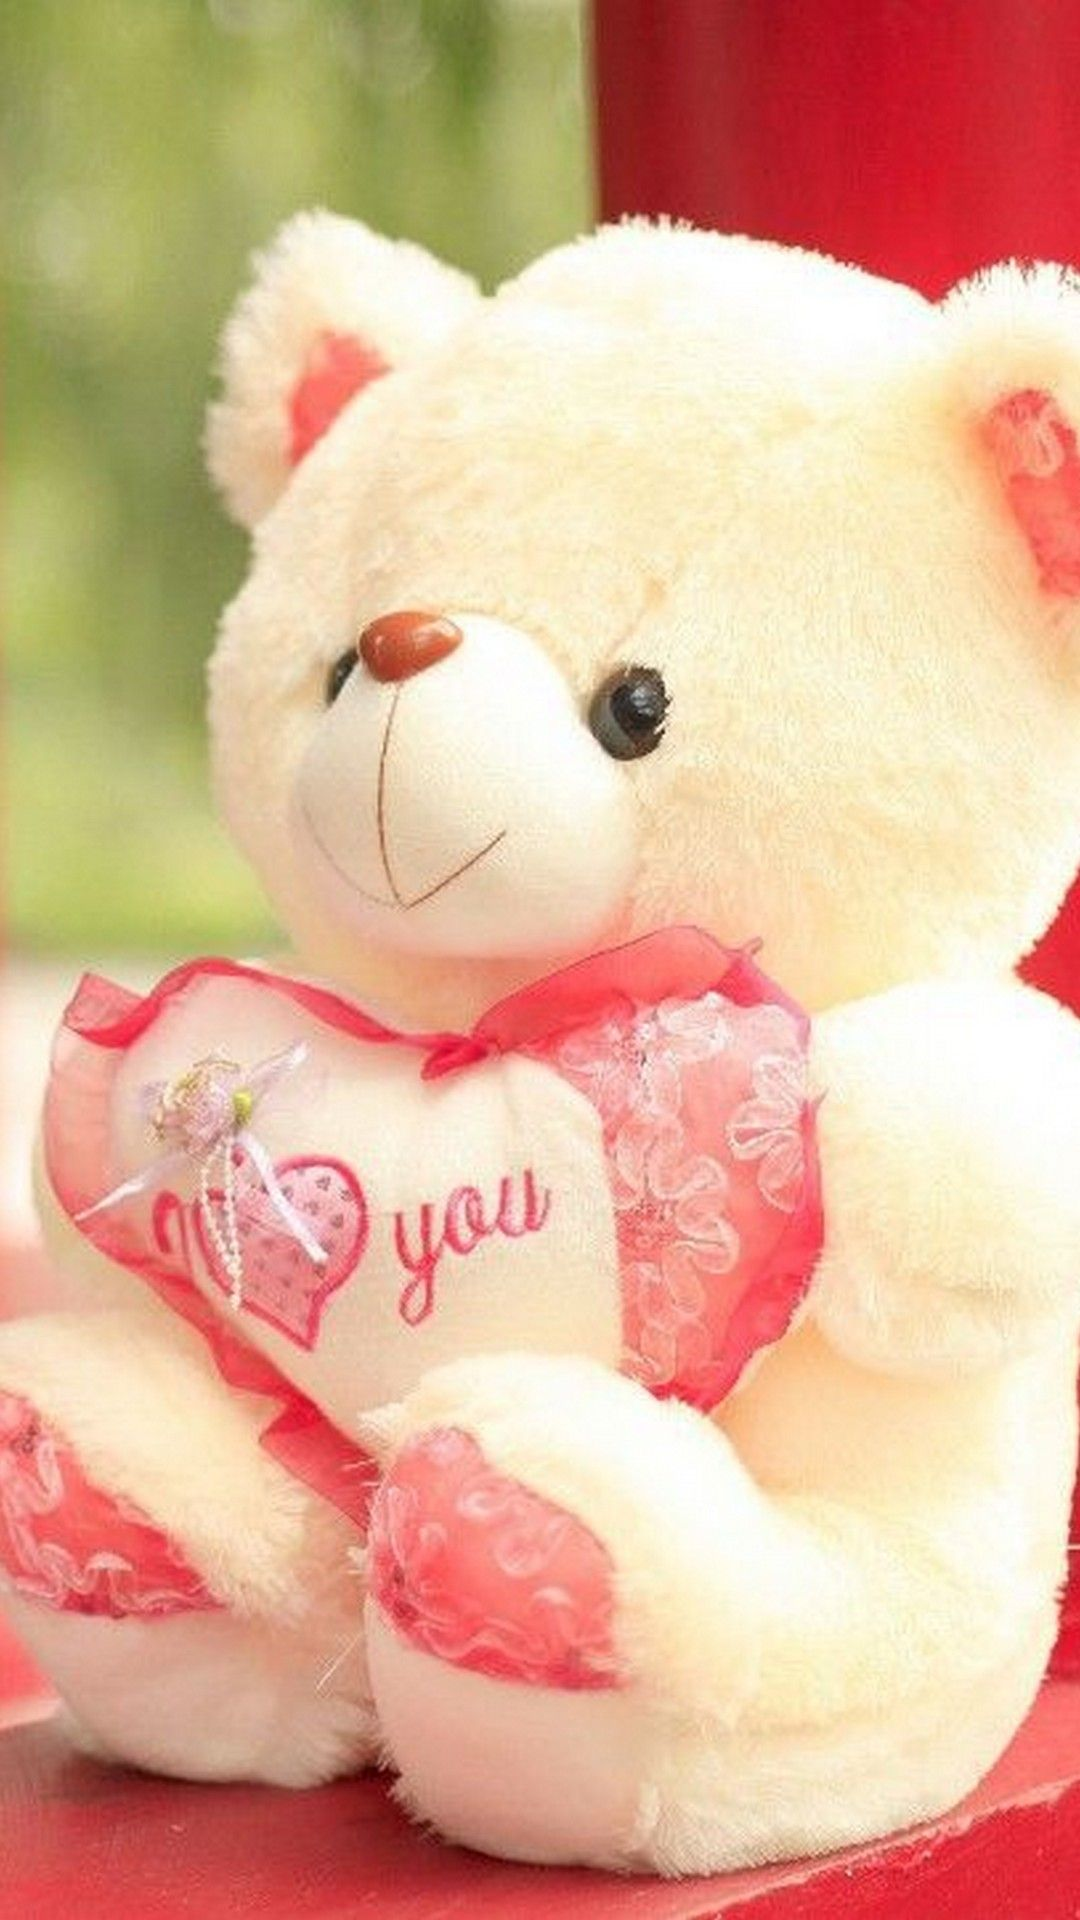 Cute Teddy Bear Hd Wallpaper For Iphone With Images Teddy Bear